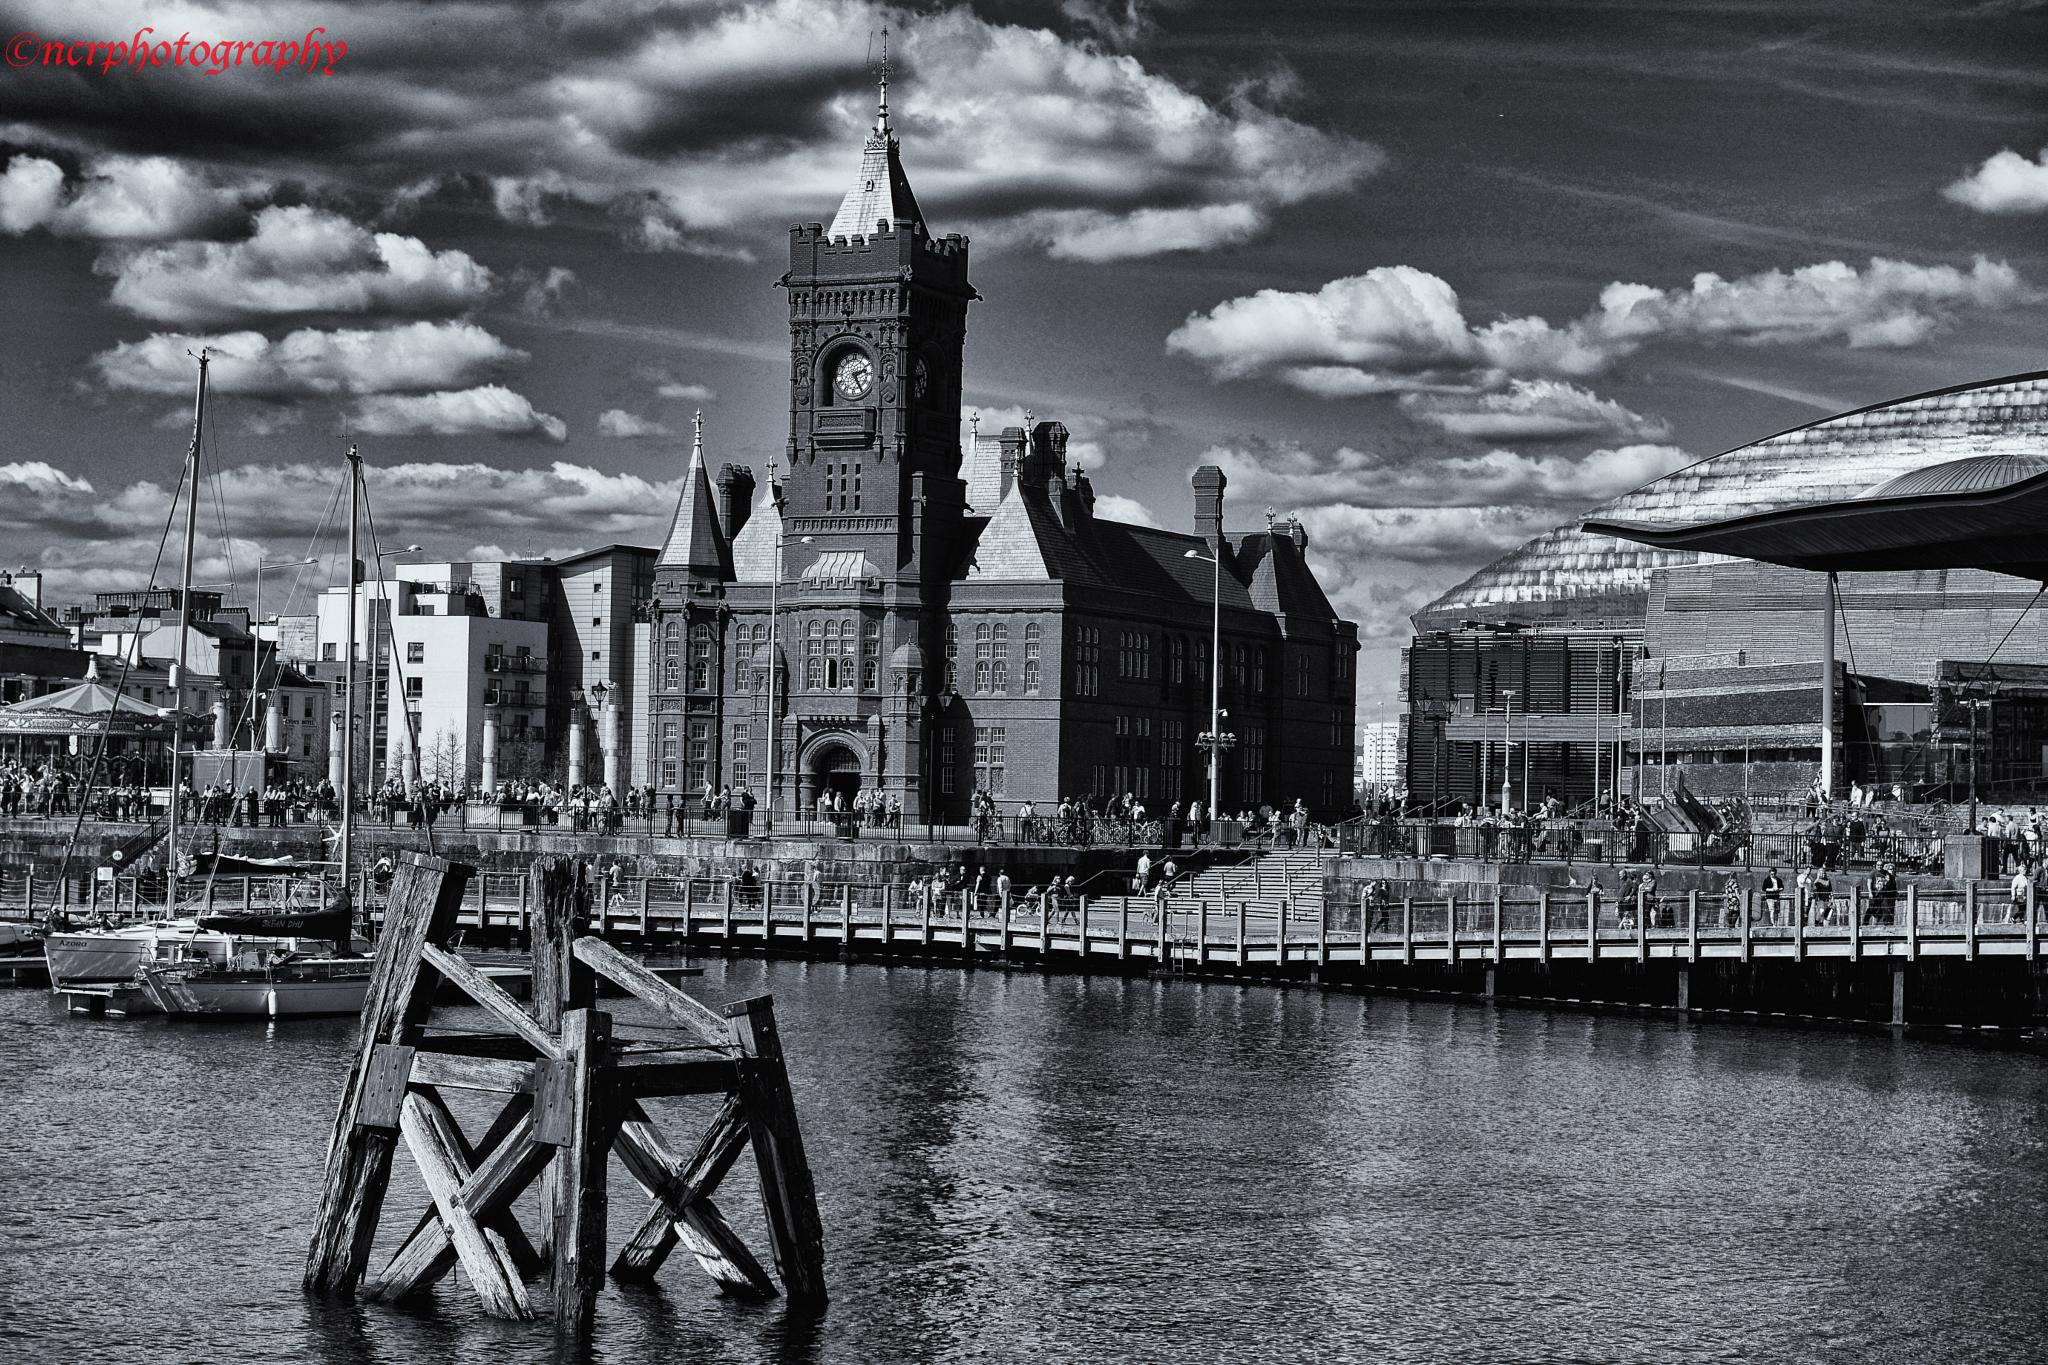 Cardiff Bay by ncr photography